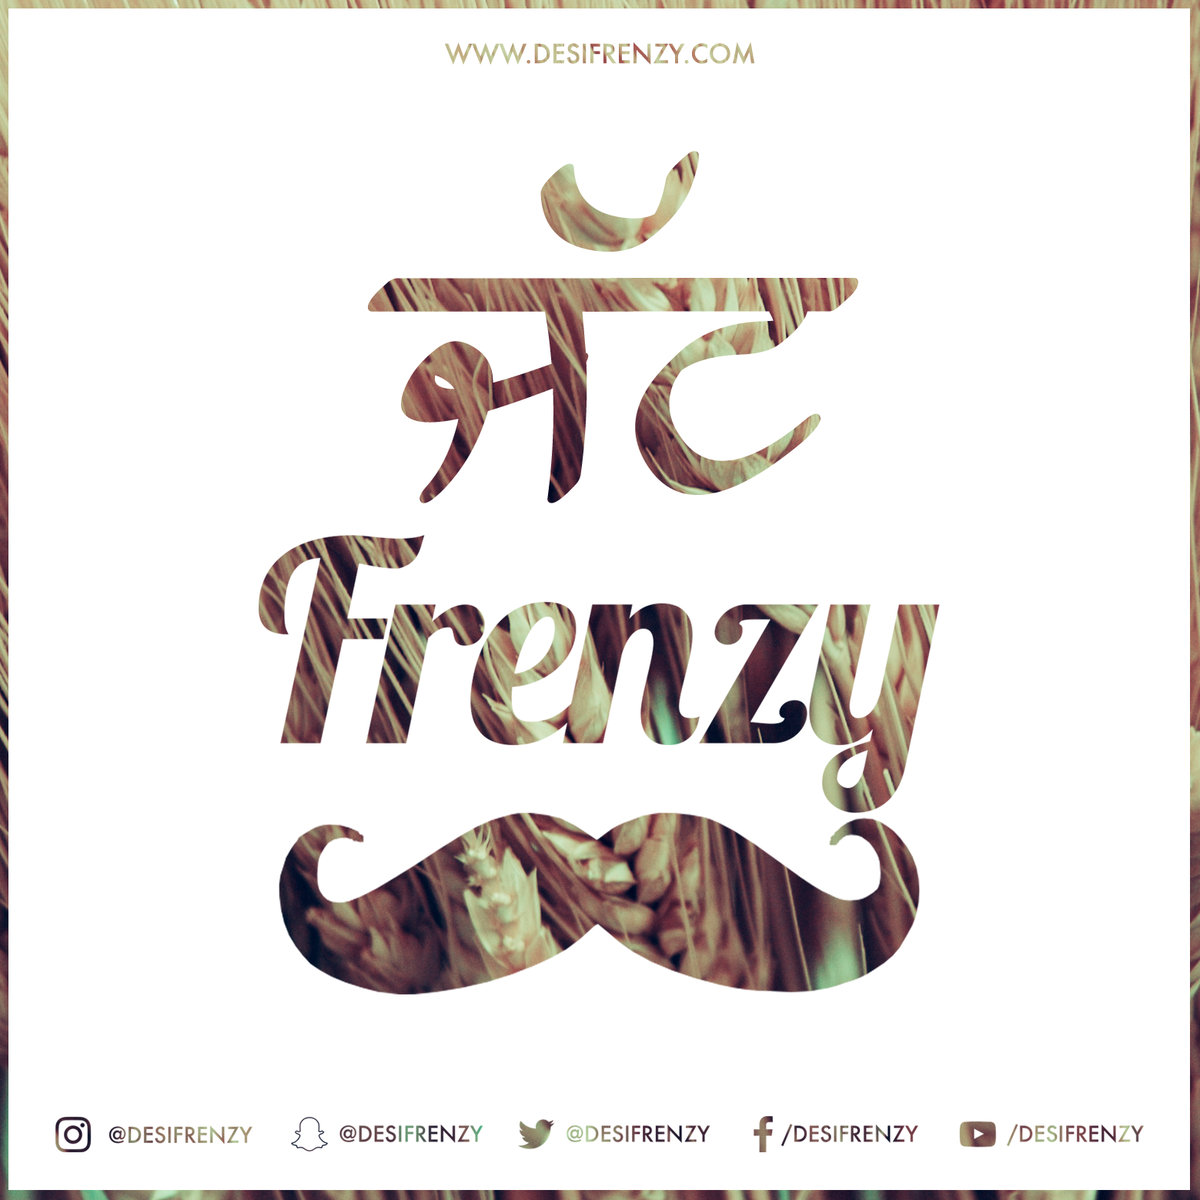 free download Jatt Frenzy Dj Frenzy full mp3 songs